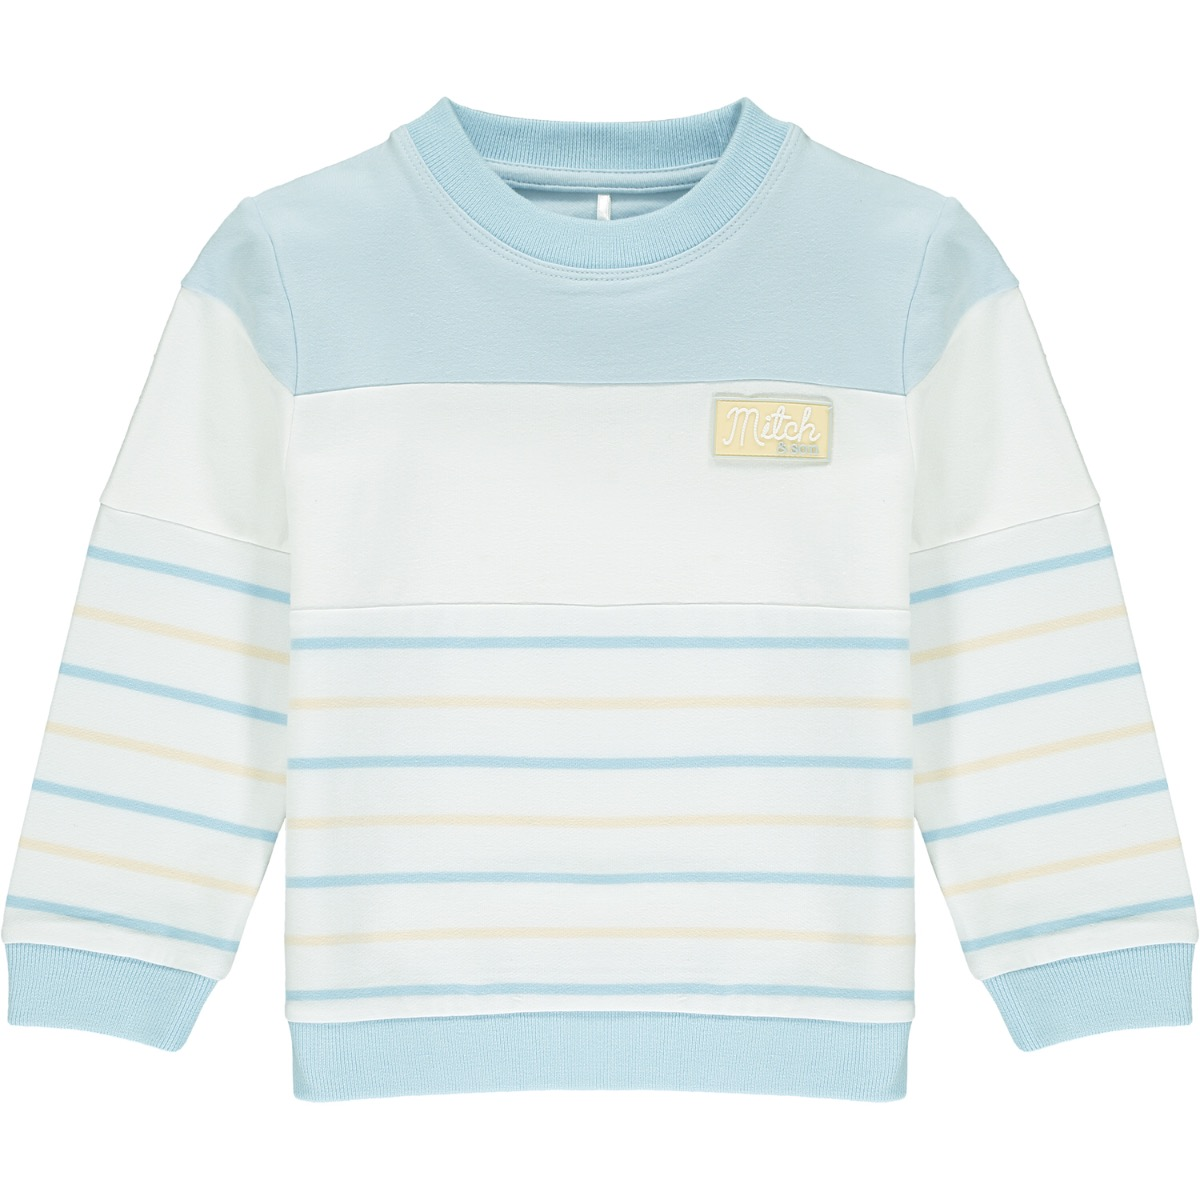 Mitch & Son Beltane Sweatshirt Set MS21117